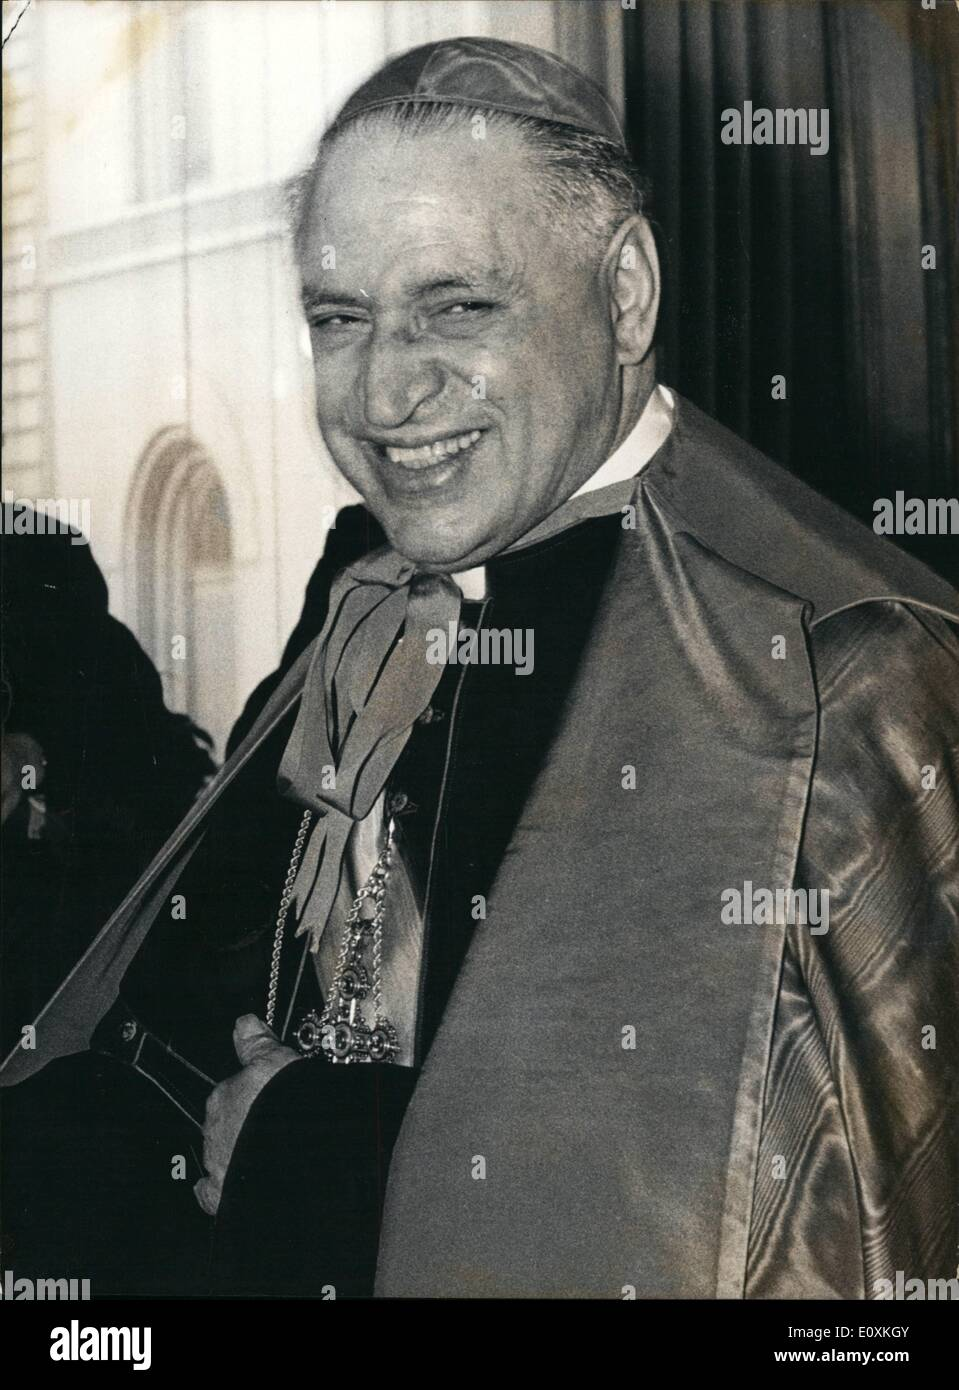 May 05, 1967 - Among the 27 designated cardinals. the apostolic nuncio in Berno, Mgr. Alfredo Pacini (Italian). Through him, Switzerland holds a close and warm relationship with the Vatican. - Stock Image